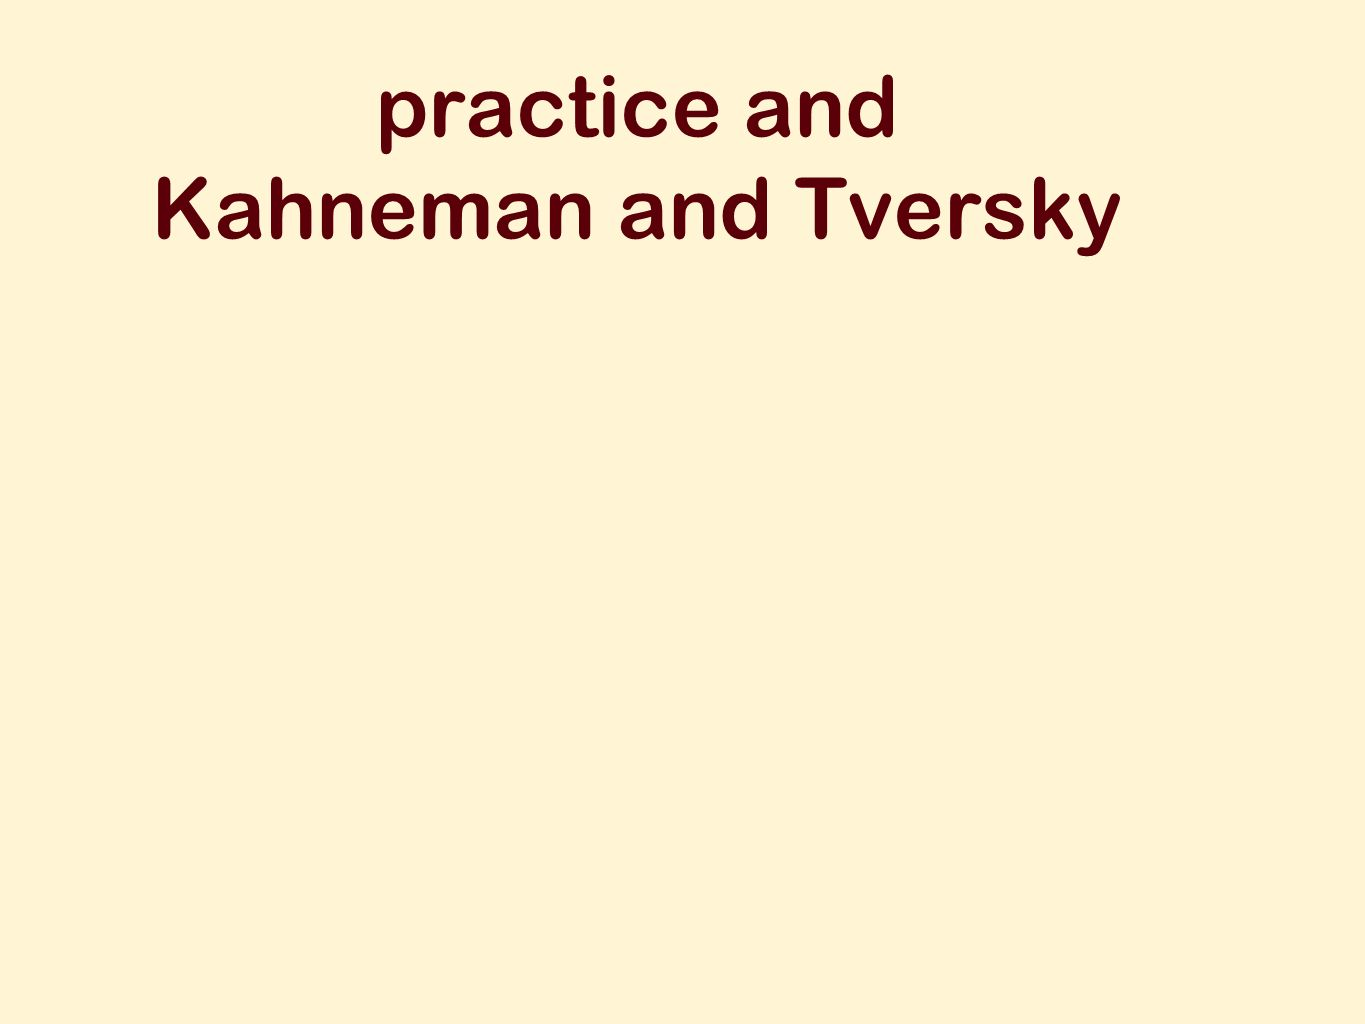 practice and Kahneman and Tversky